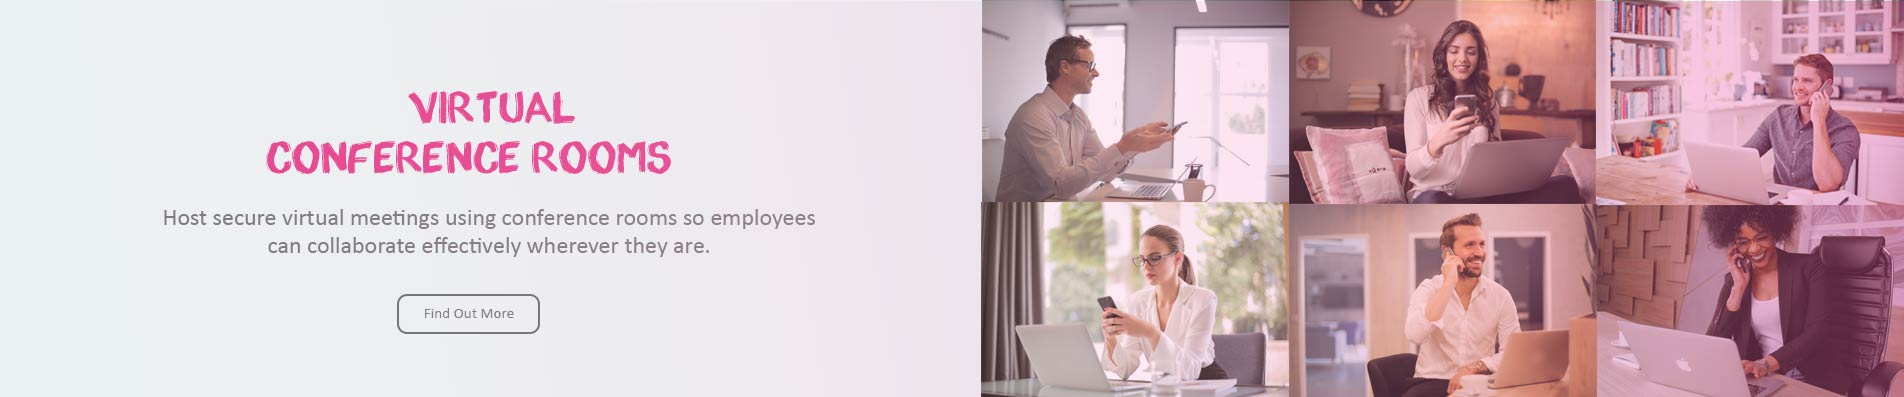 Remote Working VoIP Call Conference